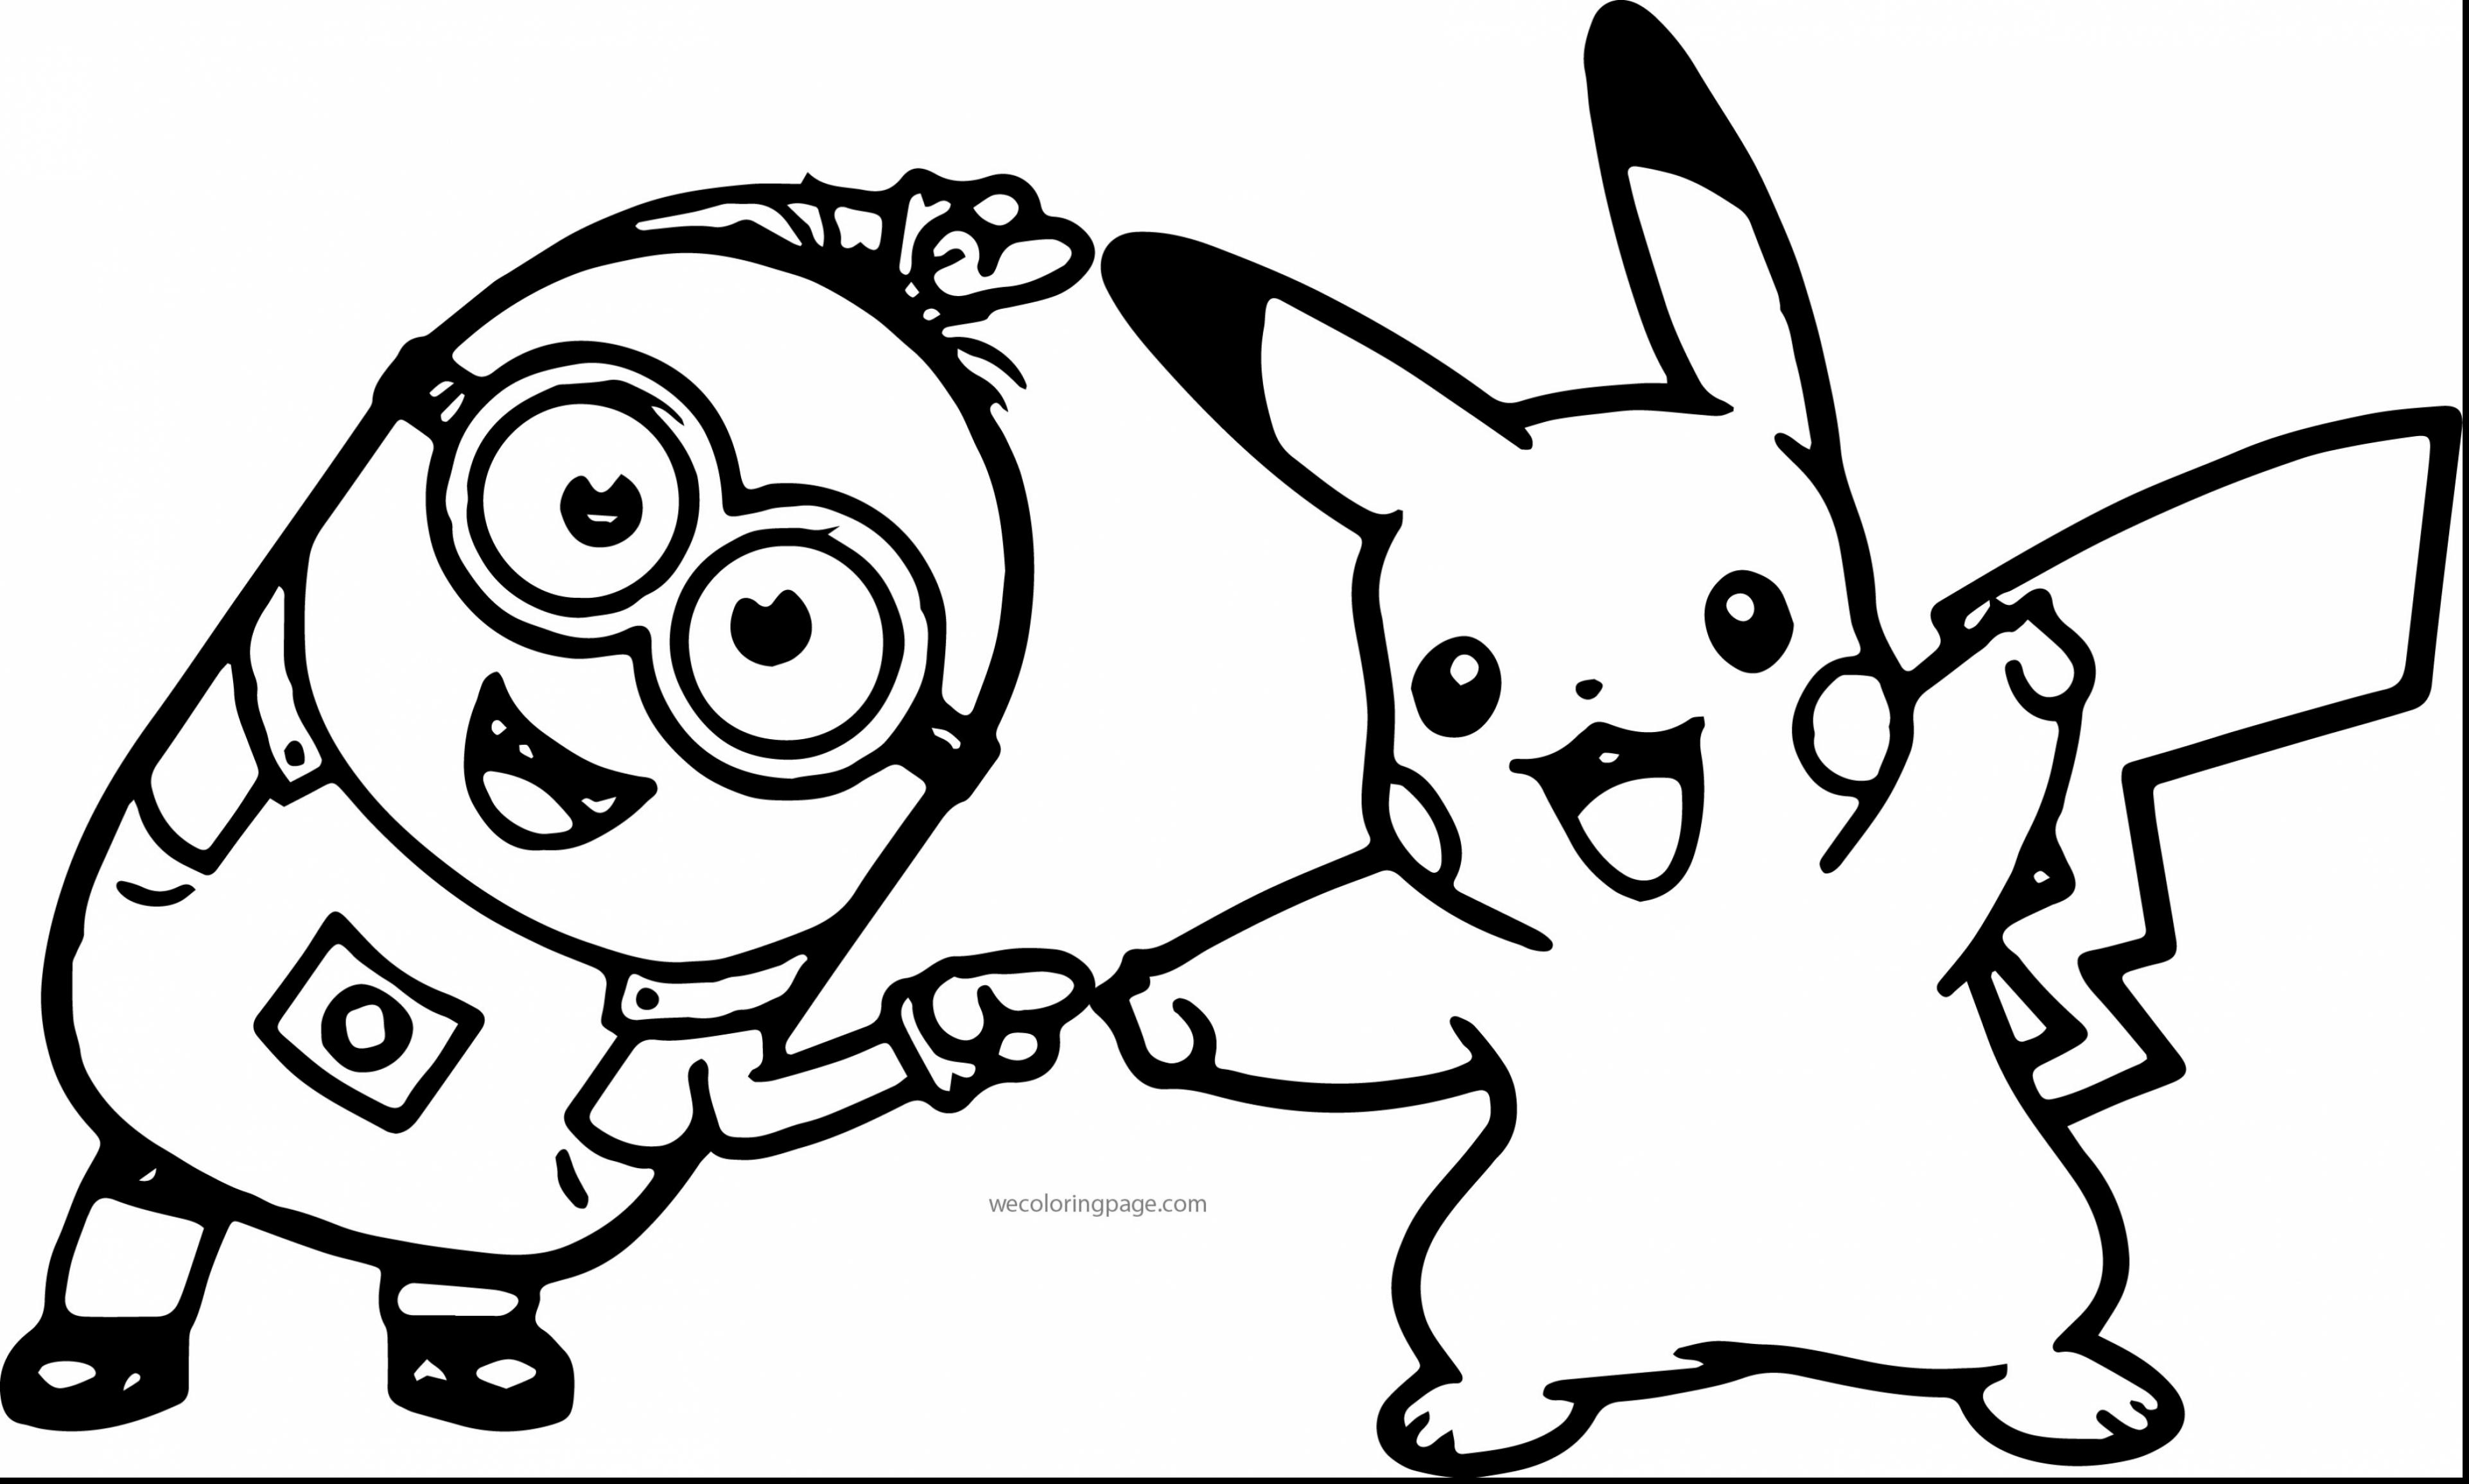 picachu coloring pages pikachu coloring pages to download and print for free pages coloring picachu